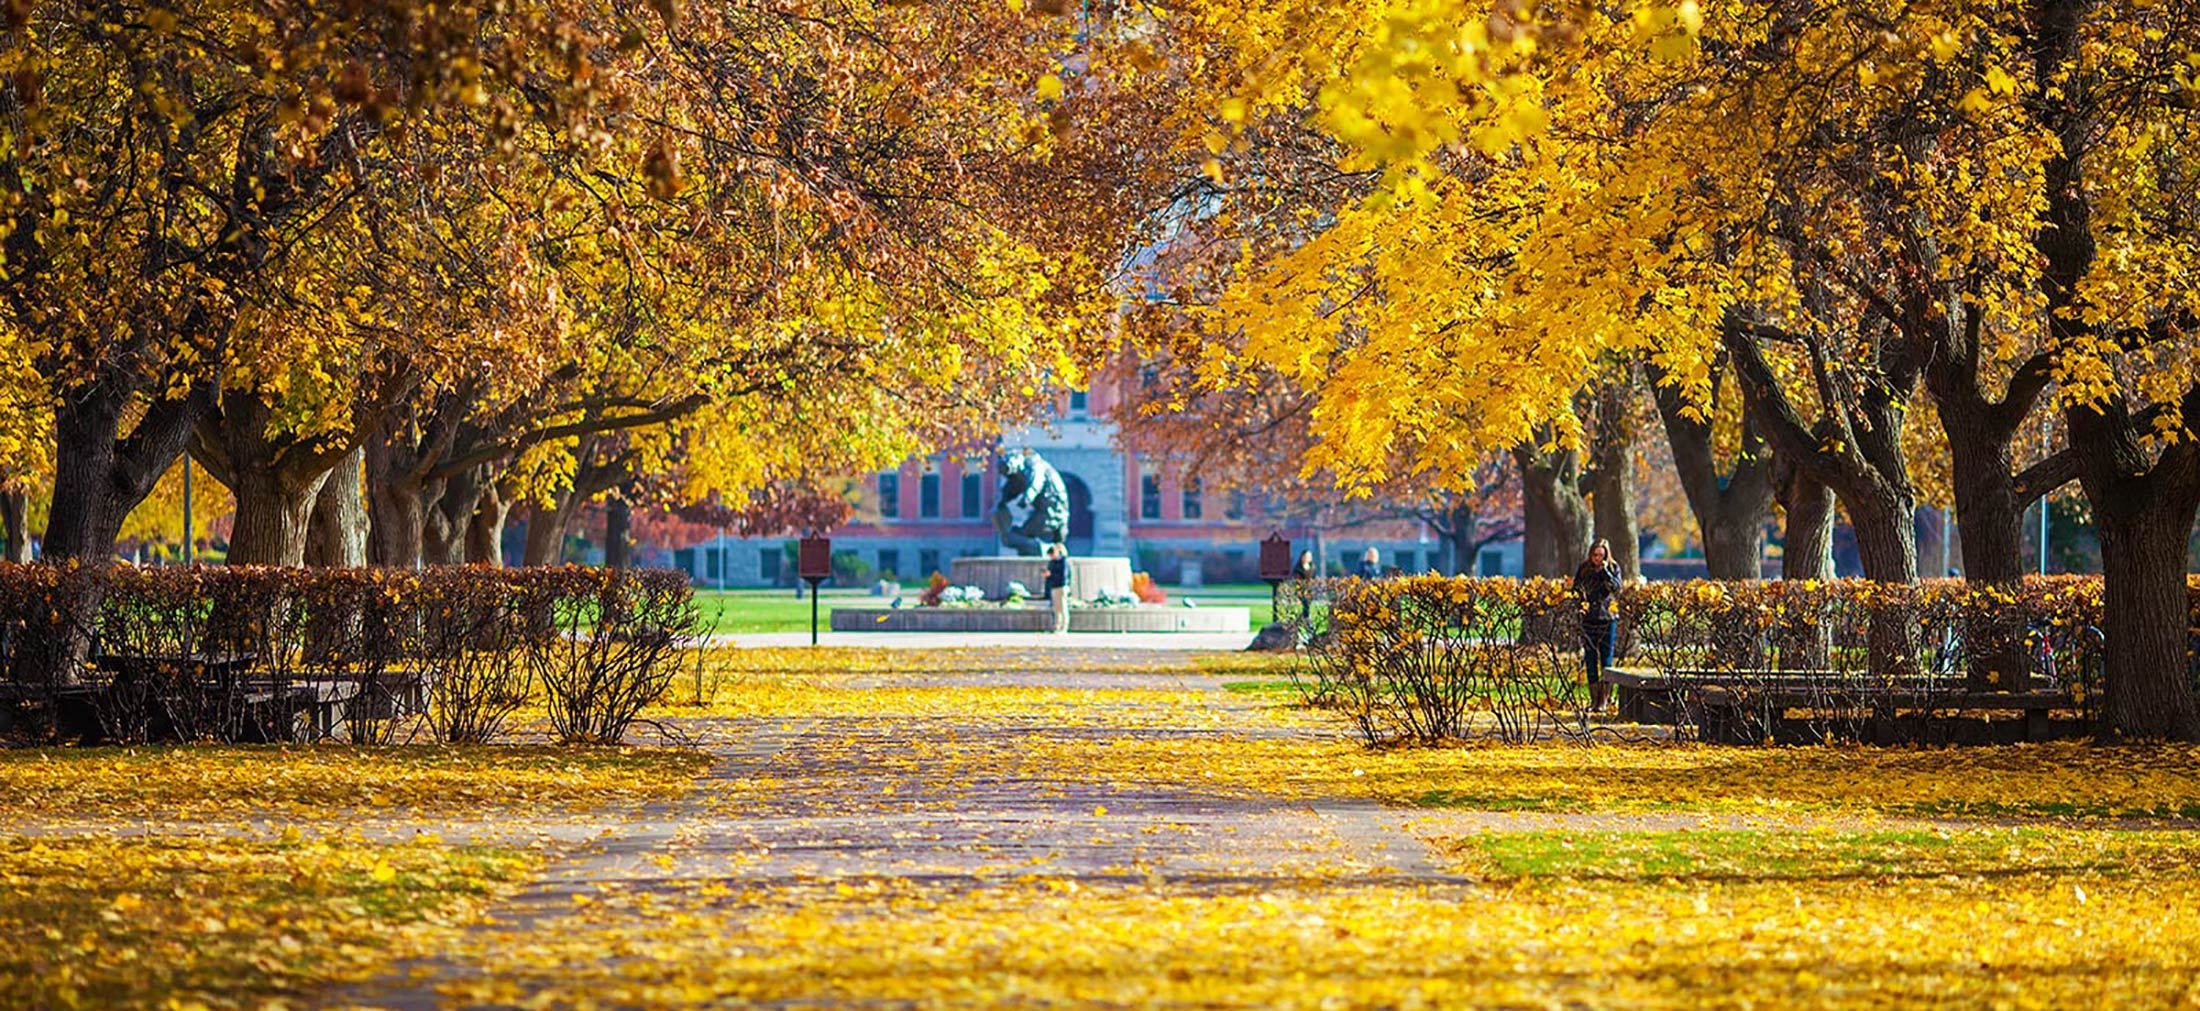 15 Photos That Prove Missoula is Undeniably Beautiful In The Fall